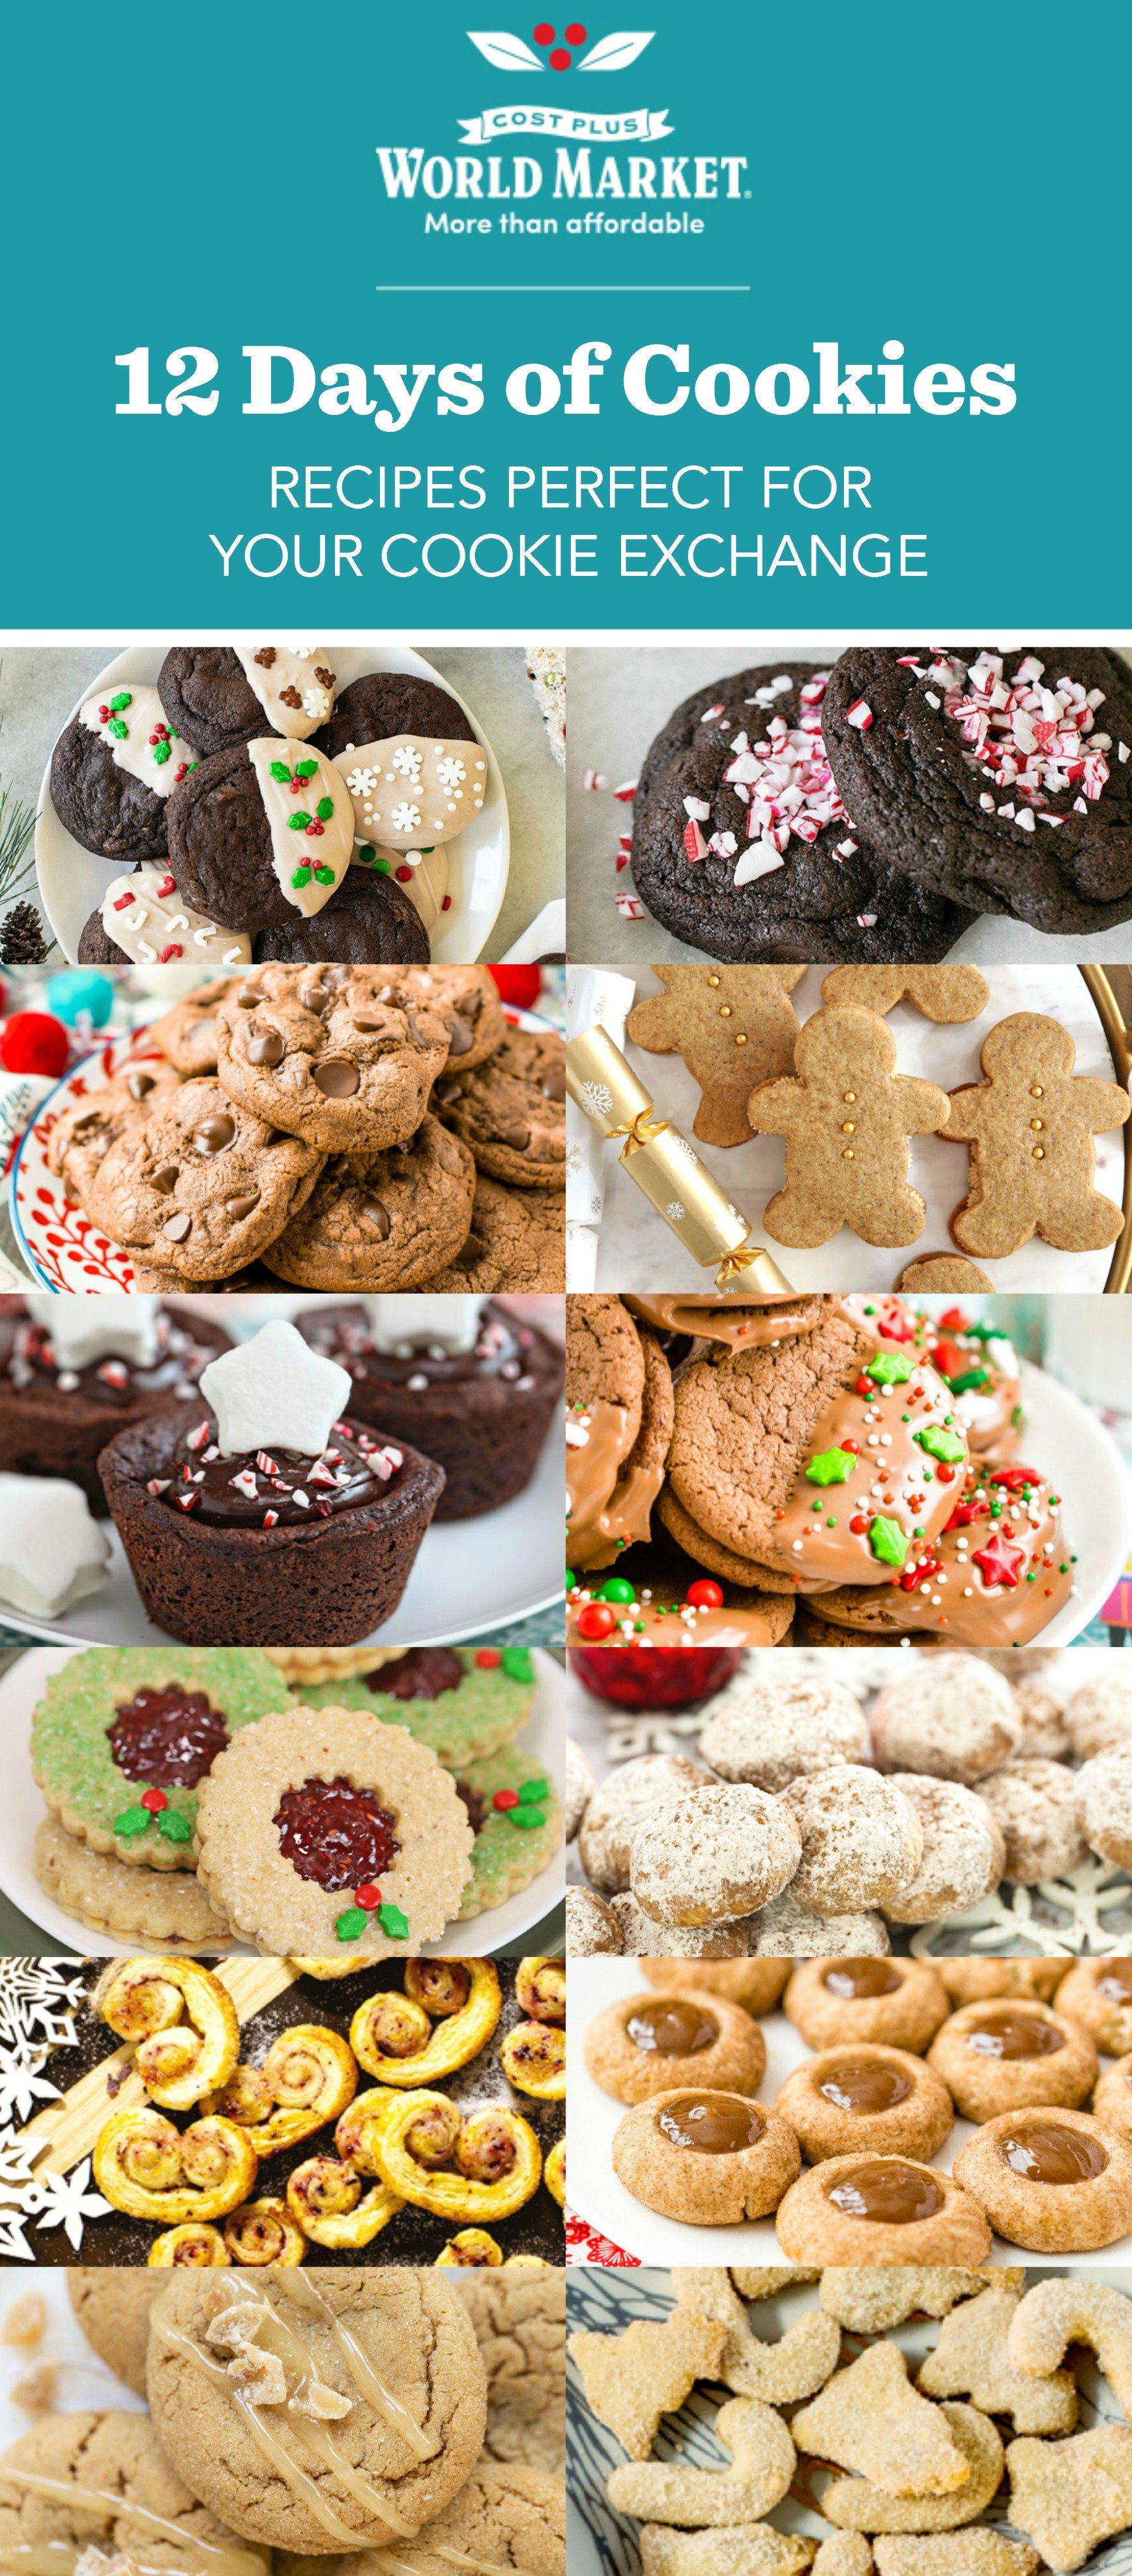 These 12 Christmas Cookie recipes are the perfect way to add fun and flavor to your holiday cookie swaps and gatherings!